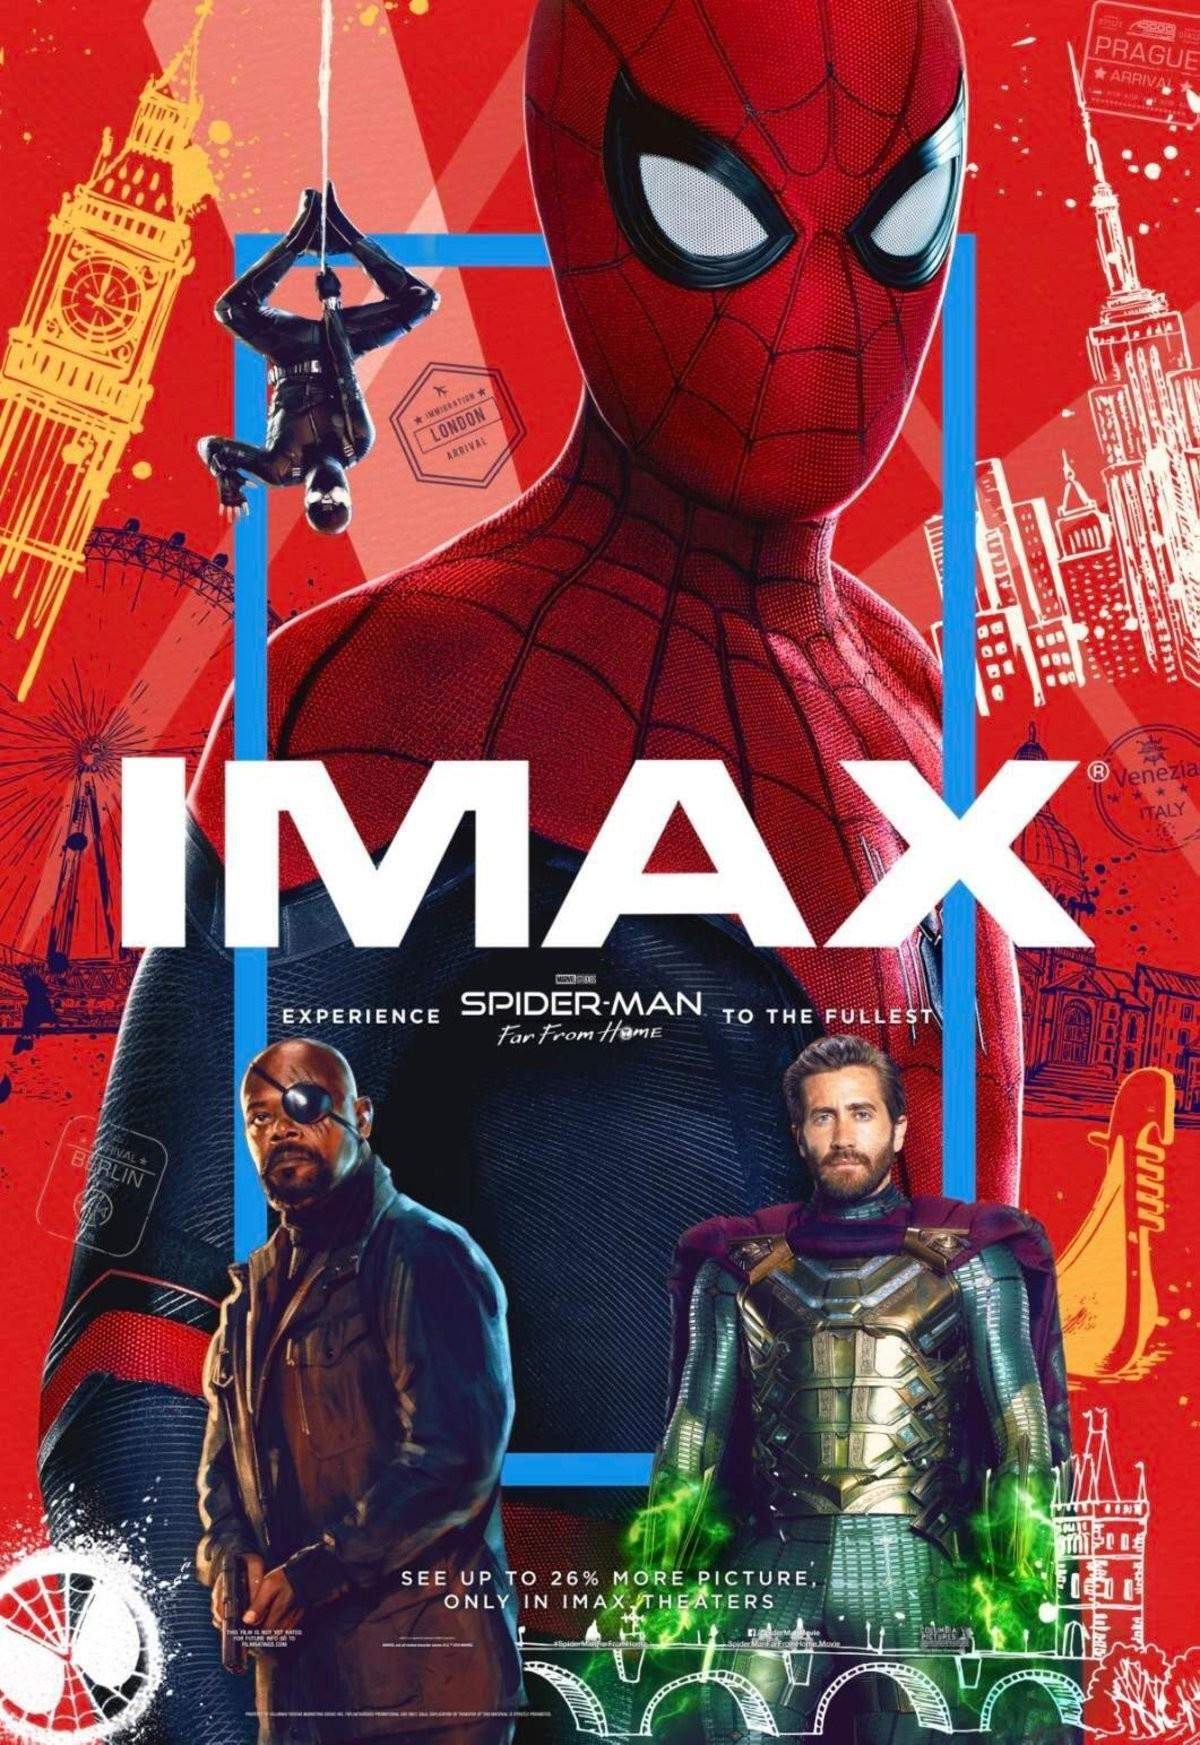 Why are Marvel's Spider-Man posters so bad?